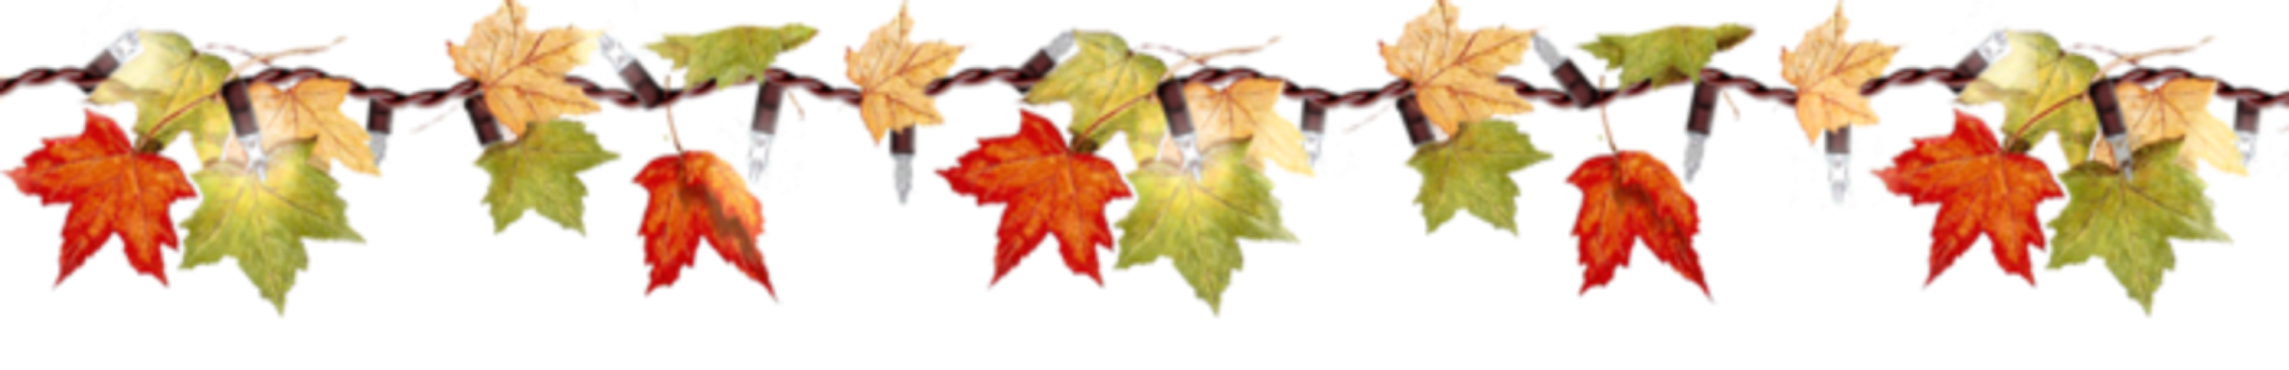 ftestickers border trim leaves autumn fallcolors...